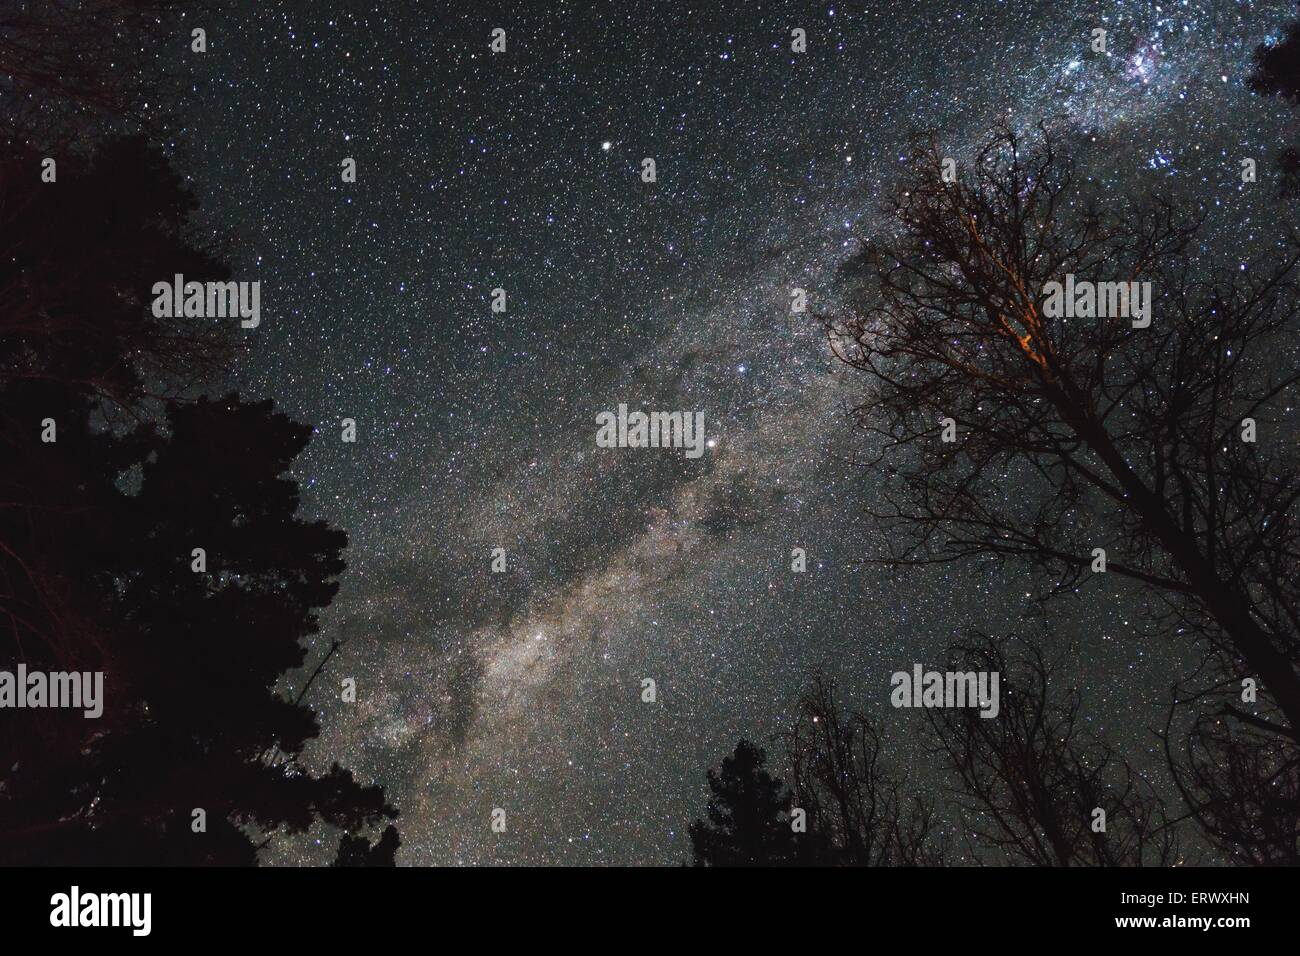 Clear skies above trees showing the milky way. - Stock Image